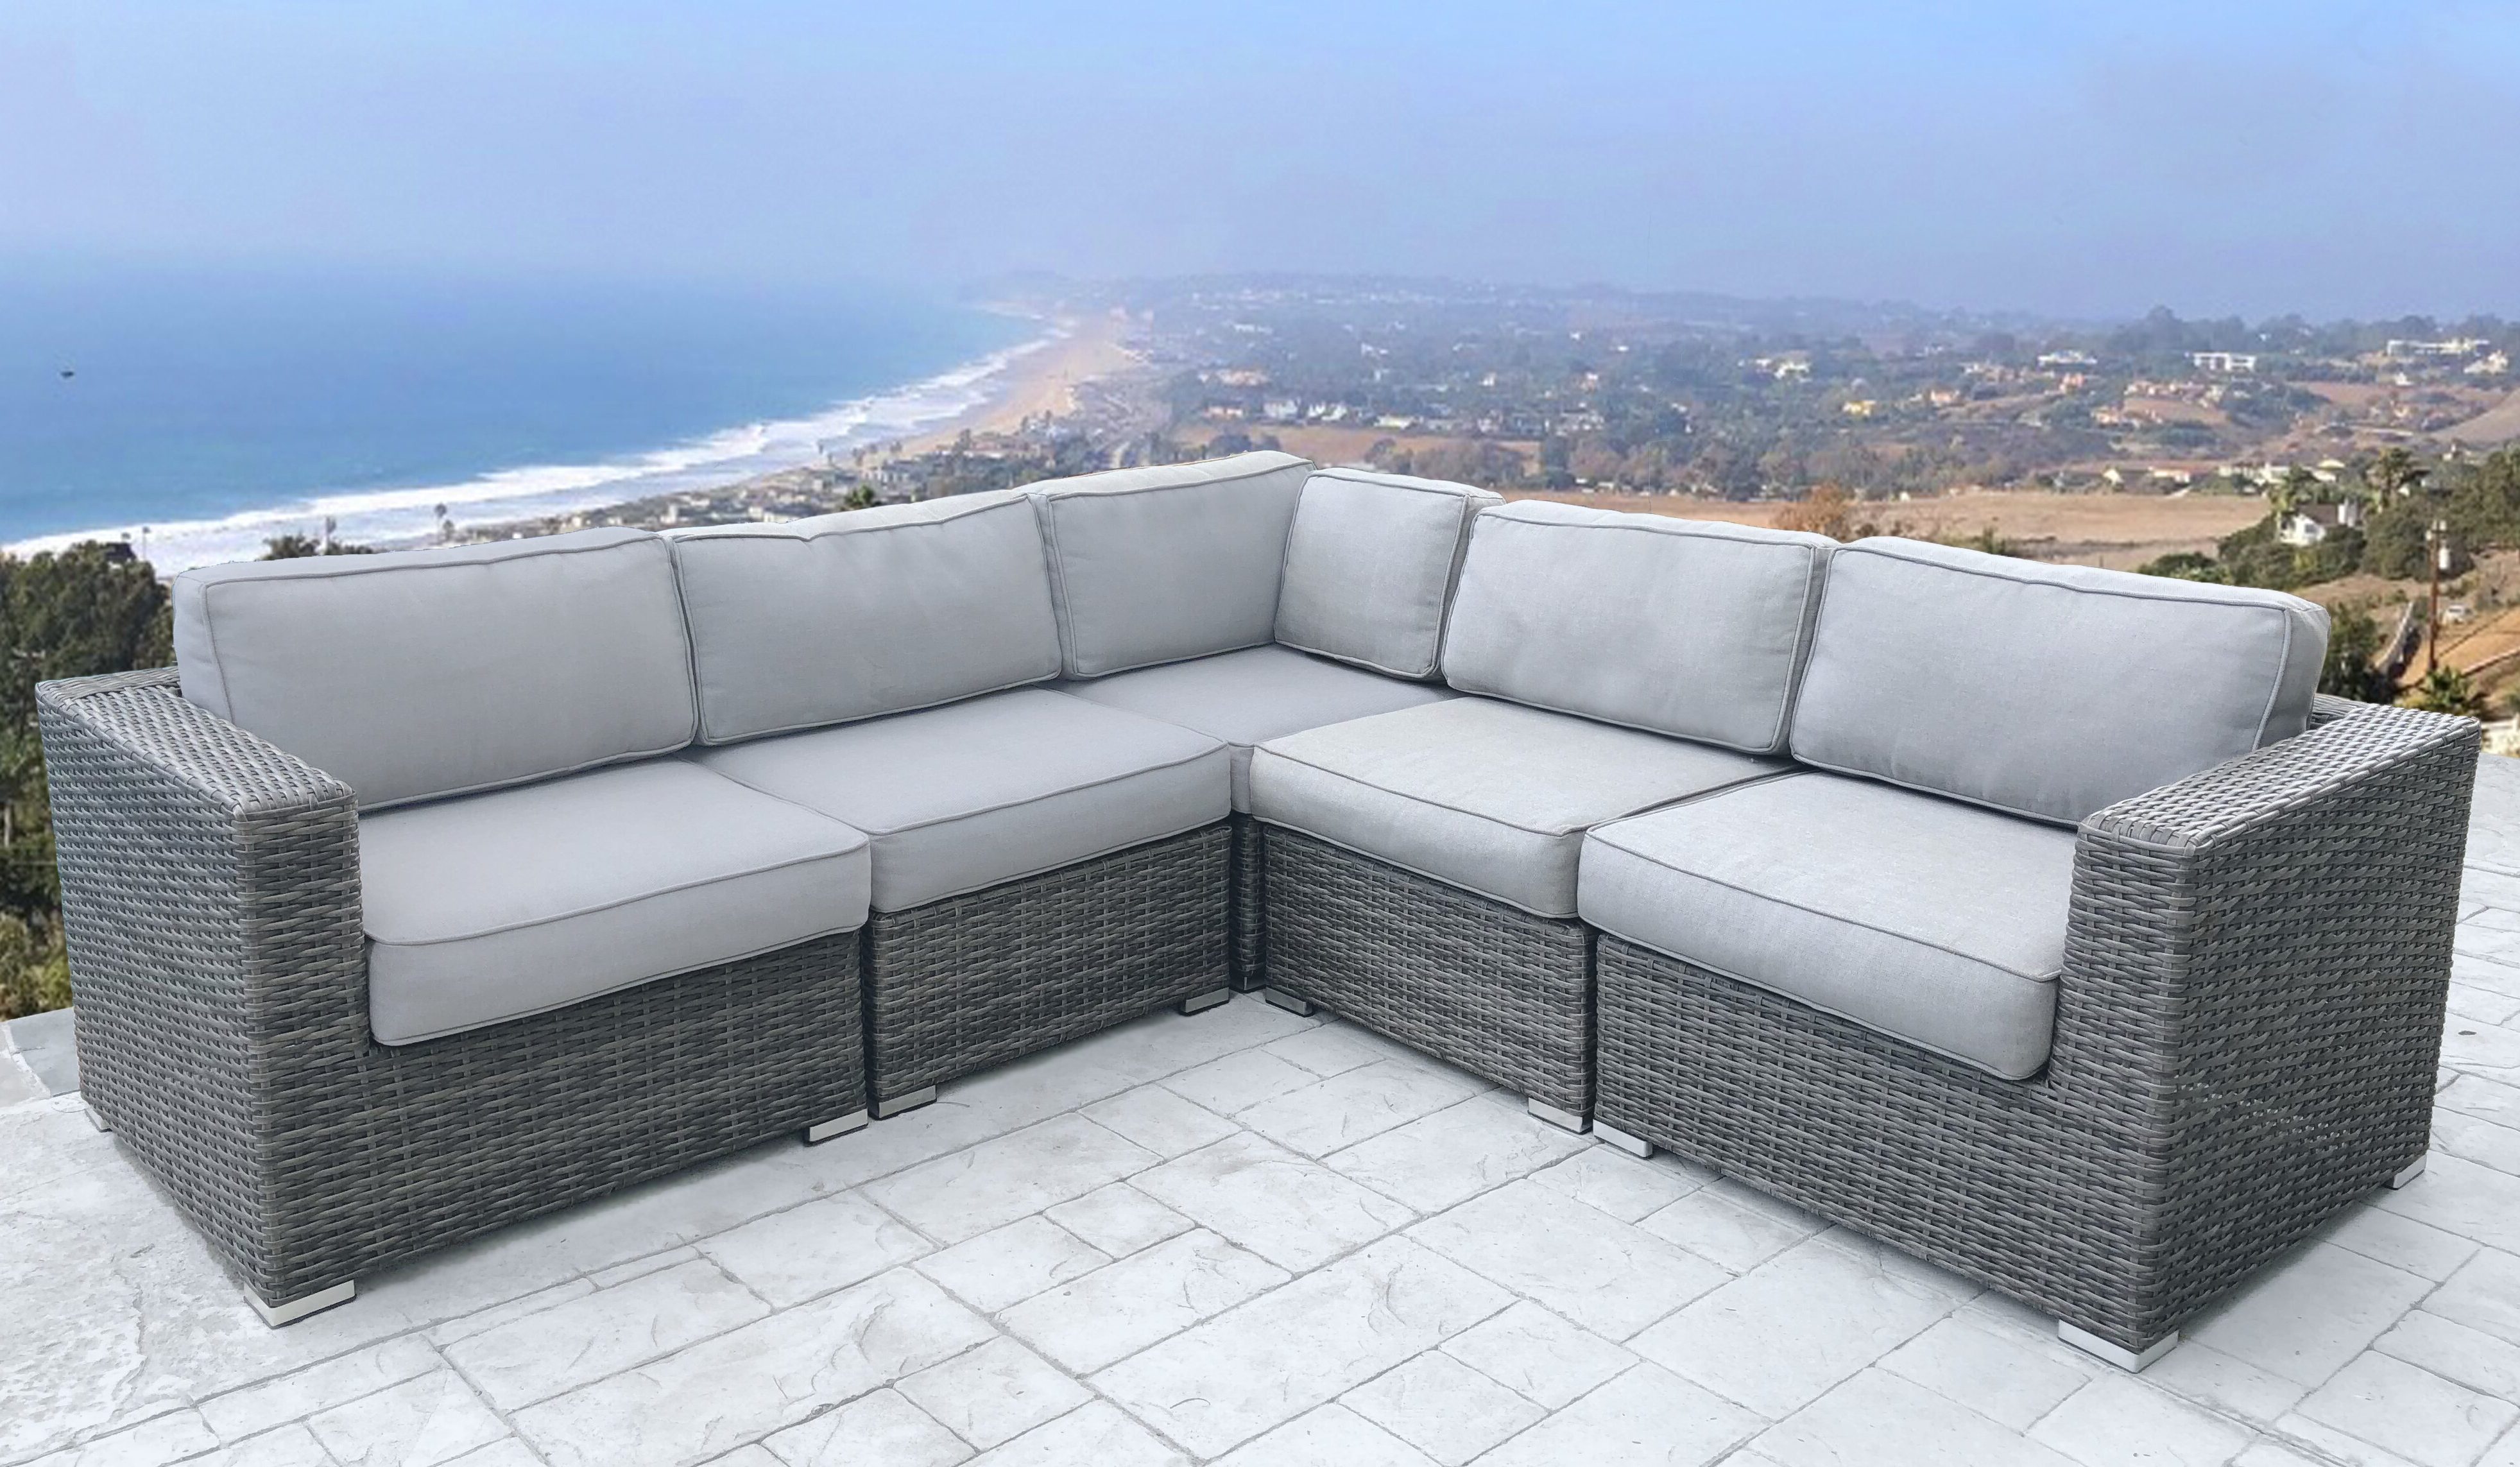 Antonia Teak Patio Sectionals With Cushions With Regard To Famous Nolen Patio Sectional With Cushions (Gallery 25 of 25)